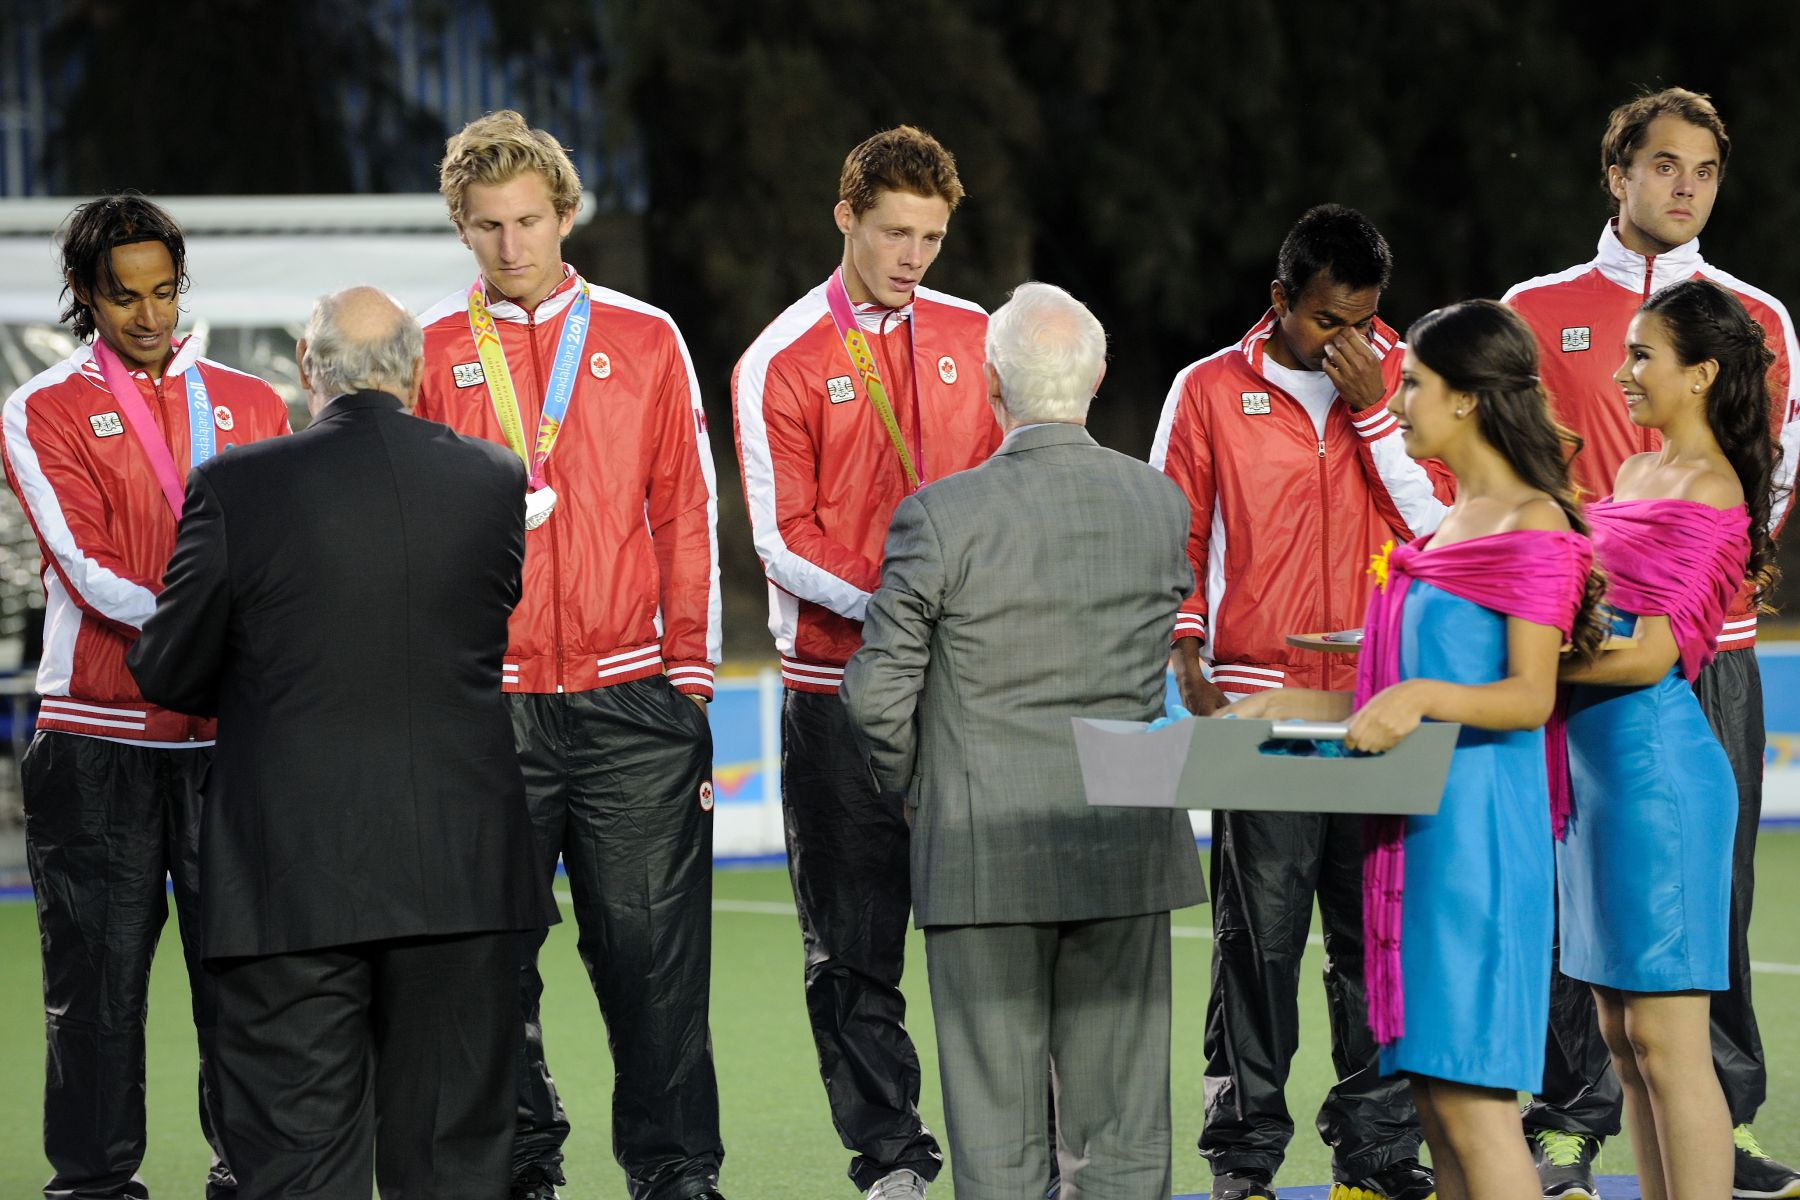 His Excellency had the honour of presenting Team Canada members with the silver medal.